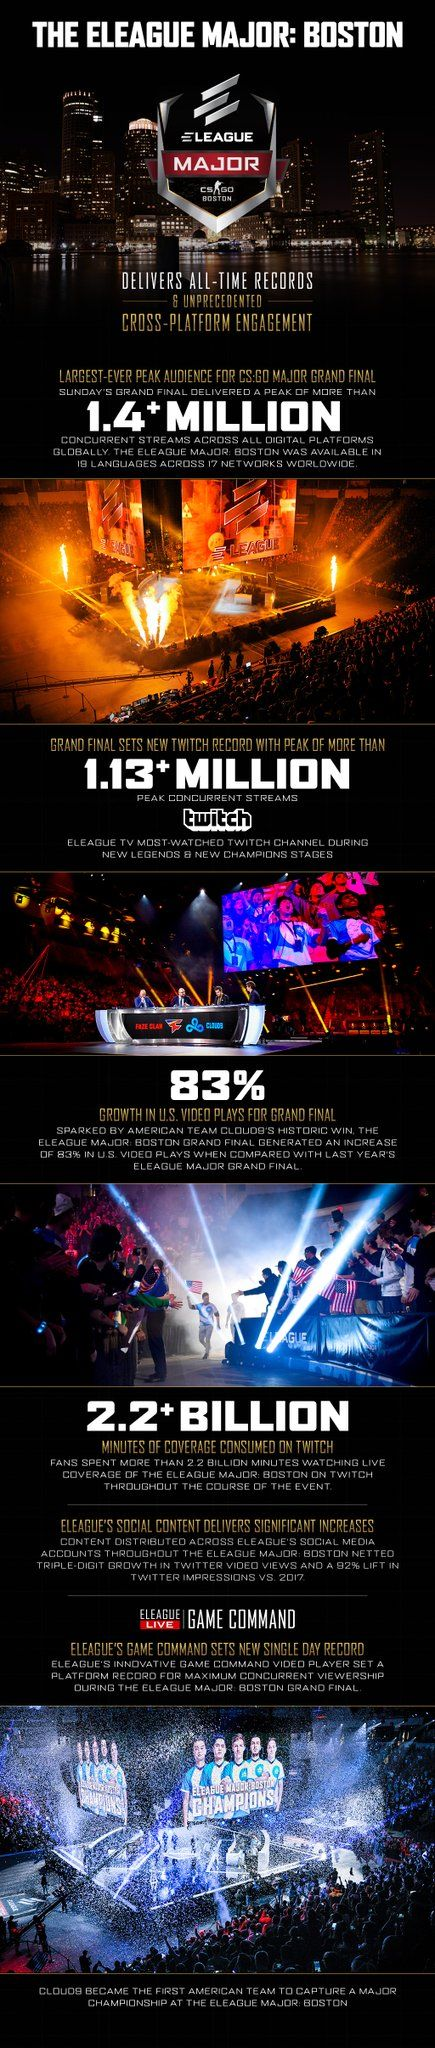 ELEAGUE Major Boston audience stats infographic by @TurnerSportsPR